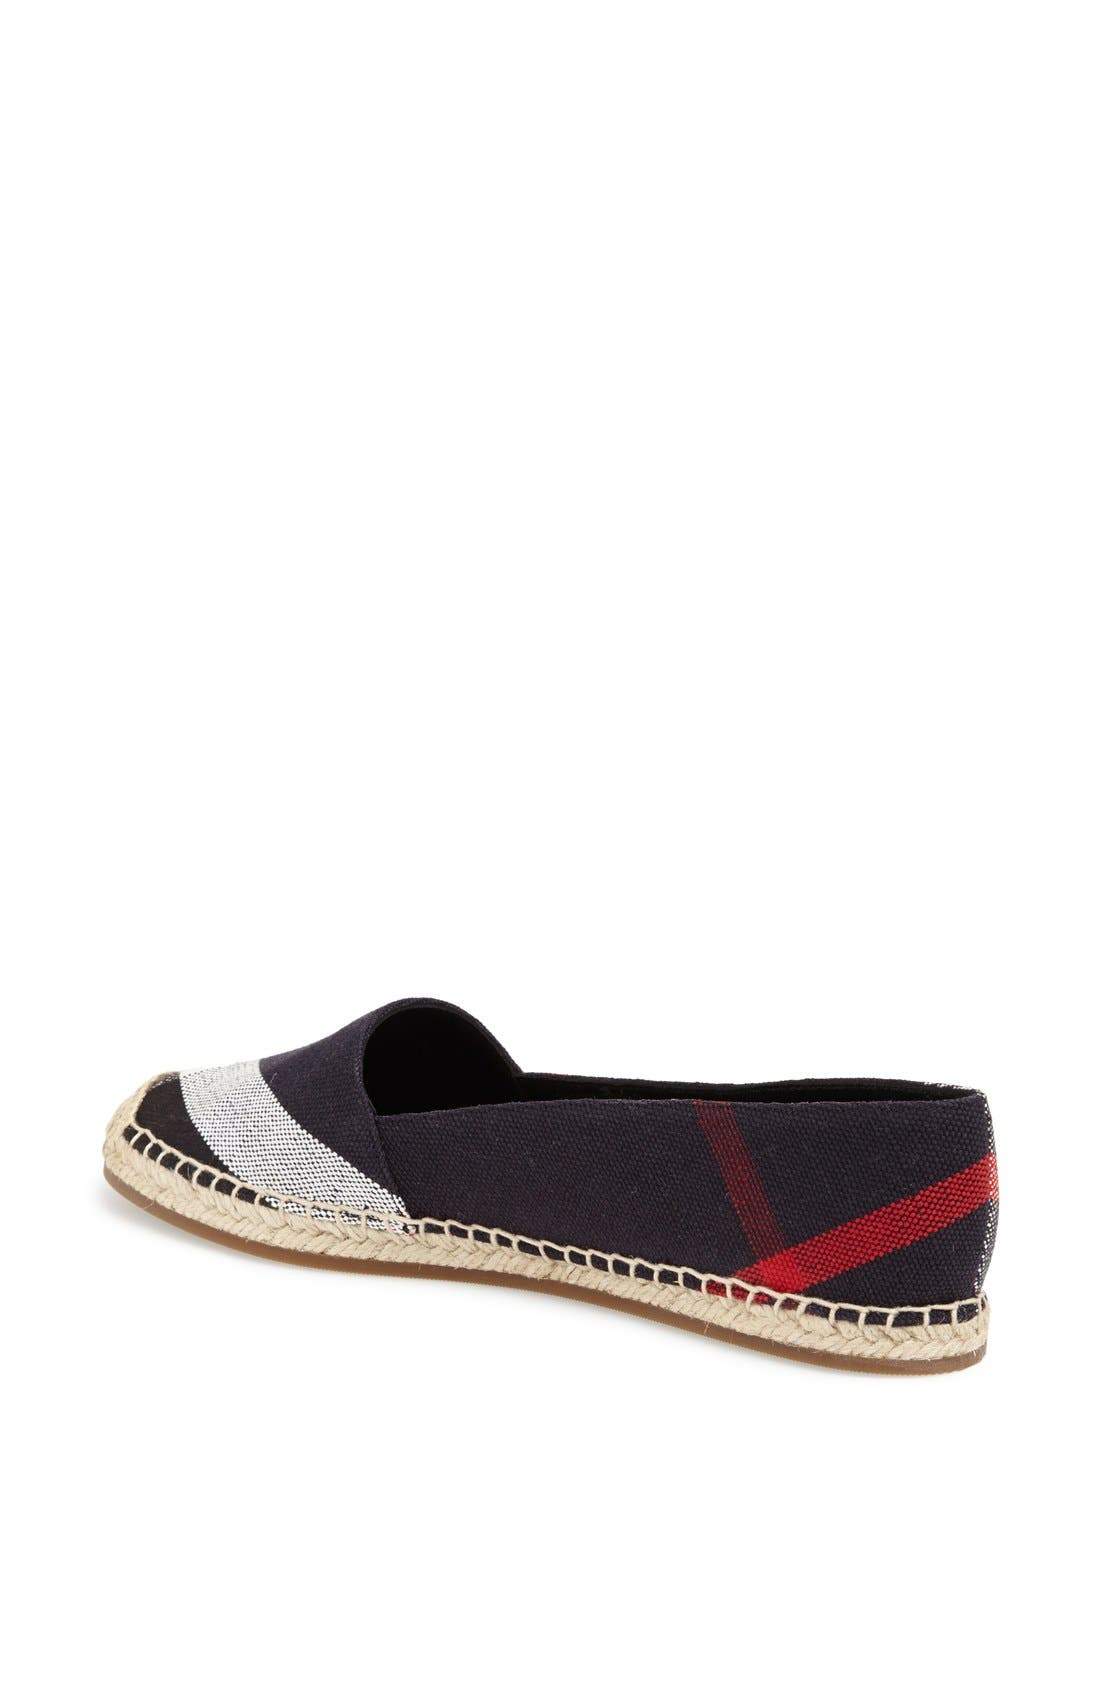 Alternate Image 2  - Burberry Hodgeson Check Print Espadrille Flat (Women)